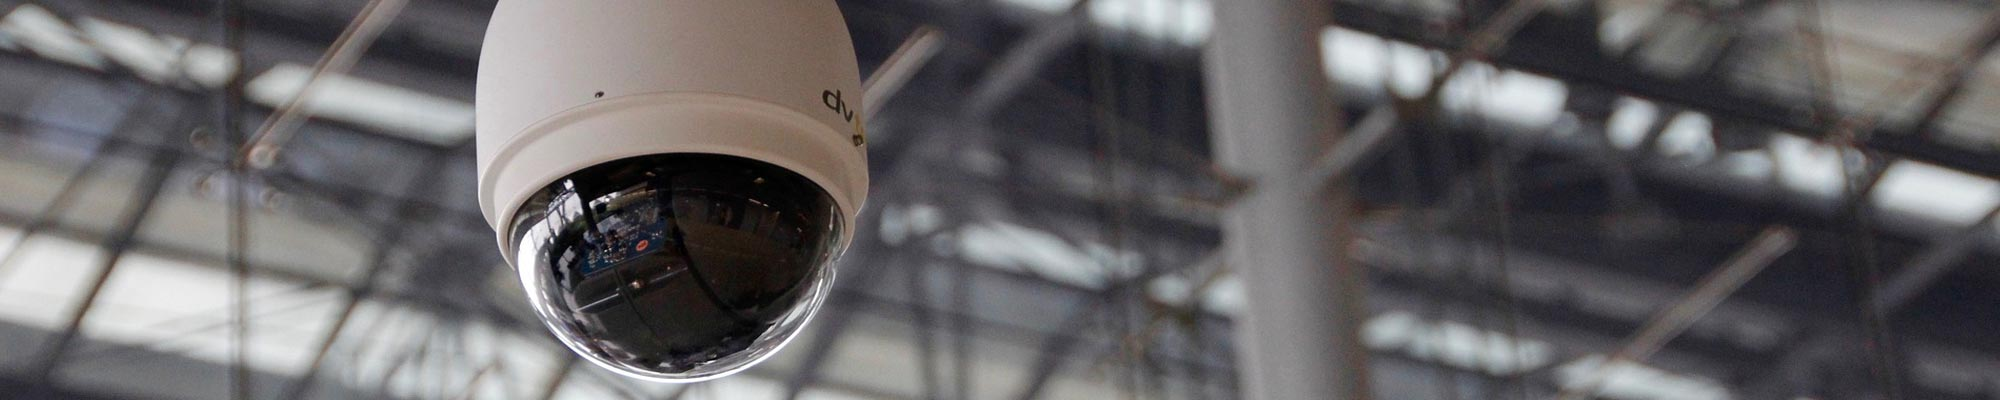 CCTV - Electricians in Reading